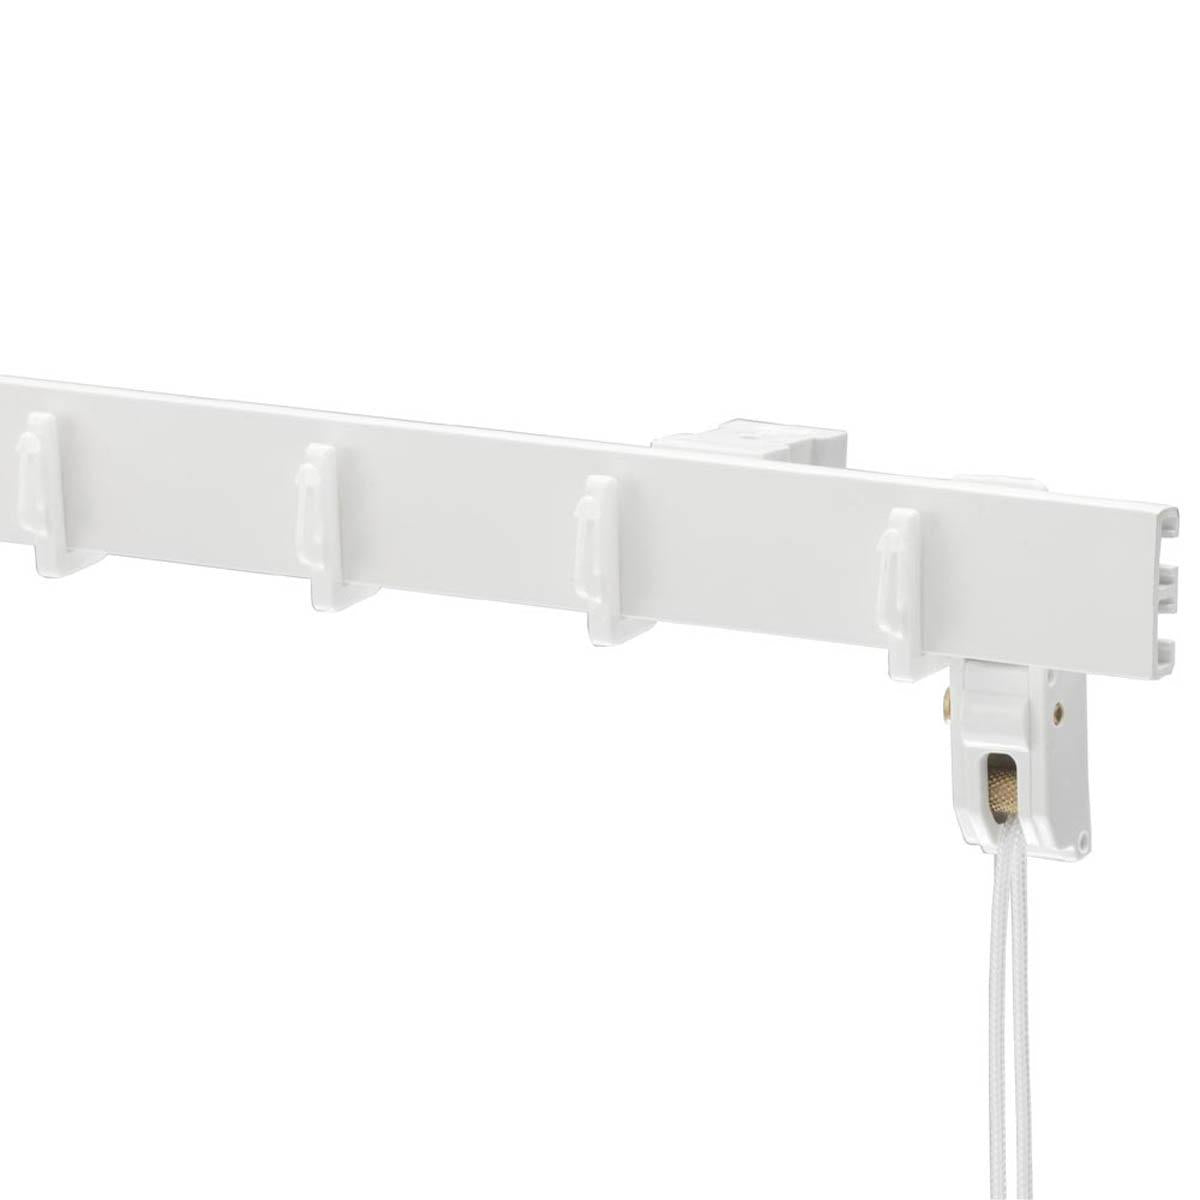 Sunflex Tracks Swish Ruche Rail White Fixing Brackets (Pk 5) Picture